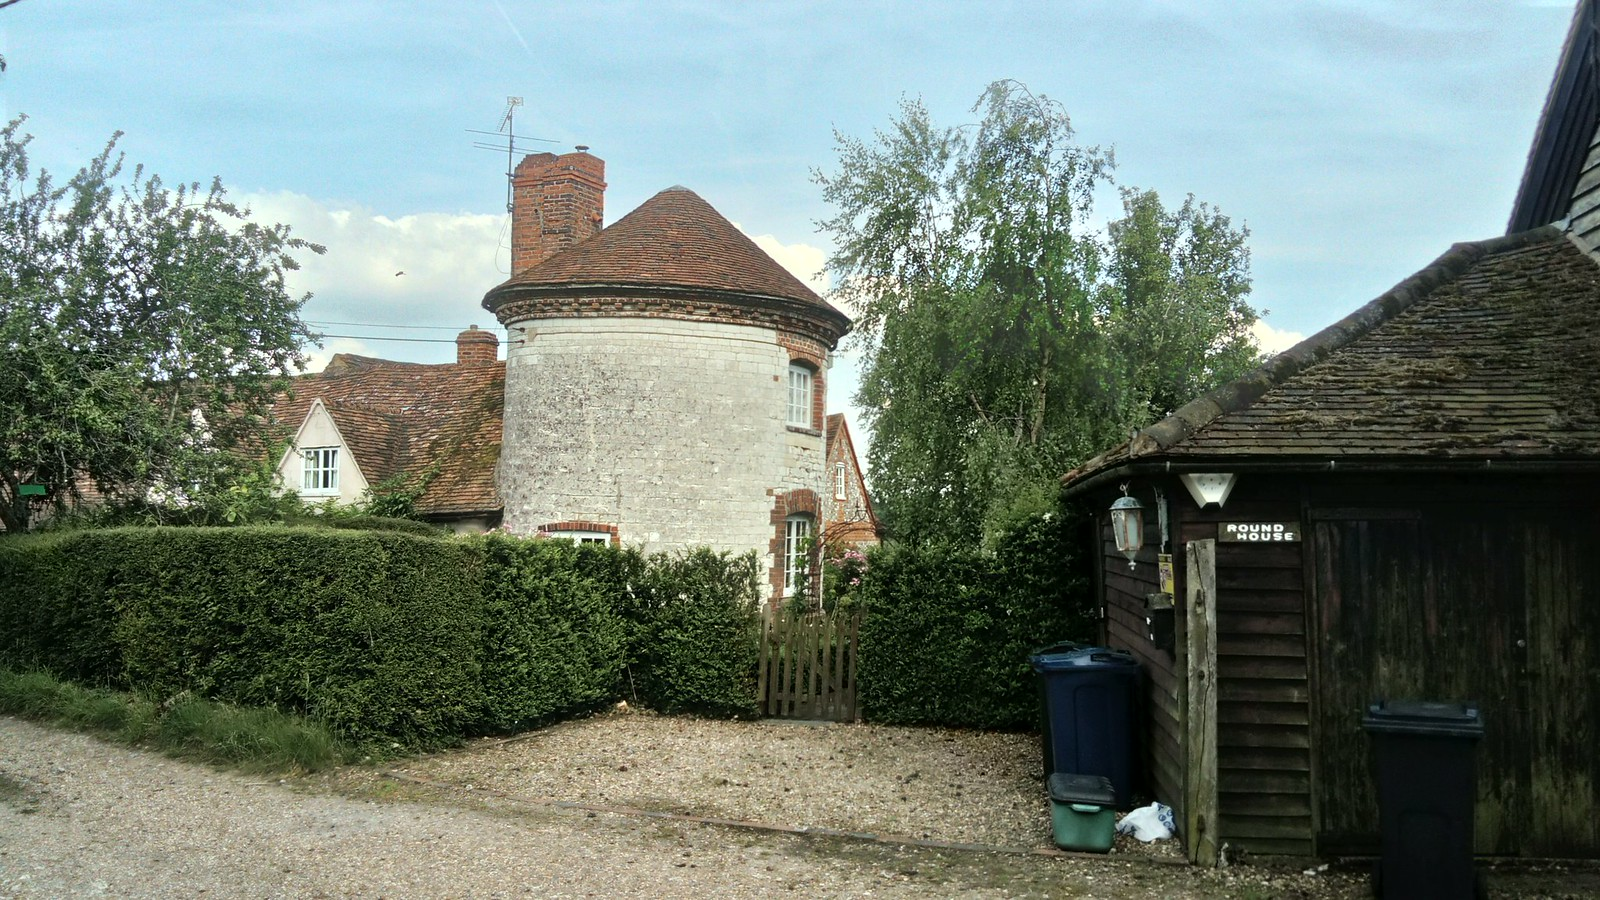 Roundhouse Farm SWC Walk 223 Henley-on-Thames Circular (via Turville) - Stonor Park Extension